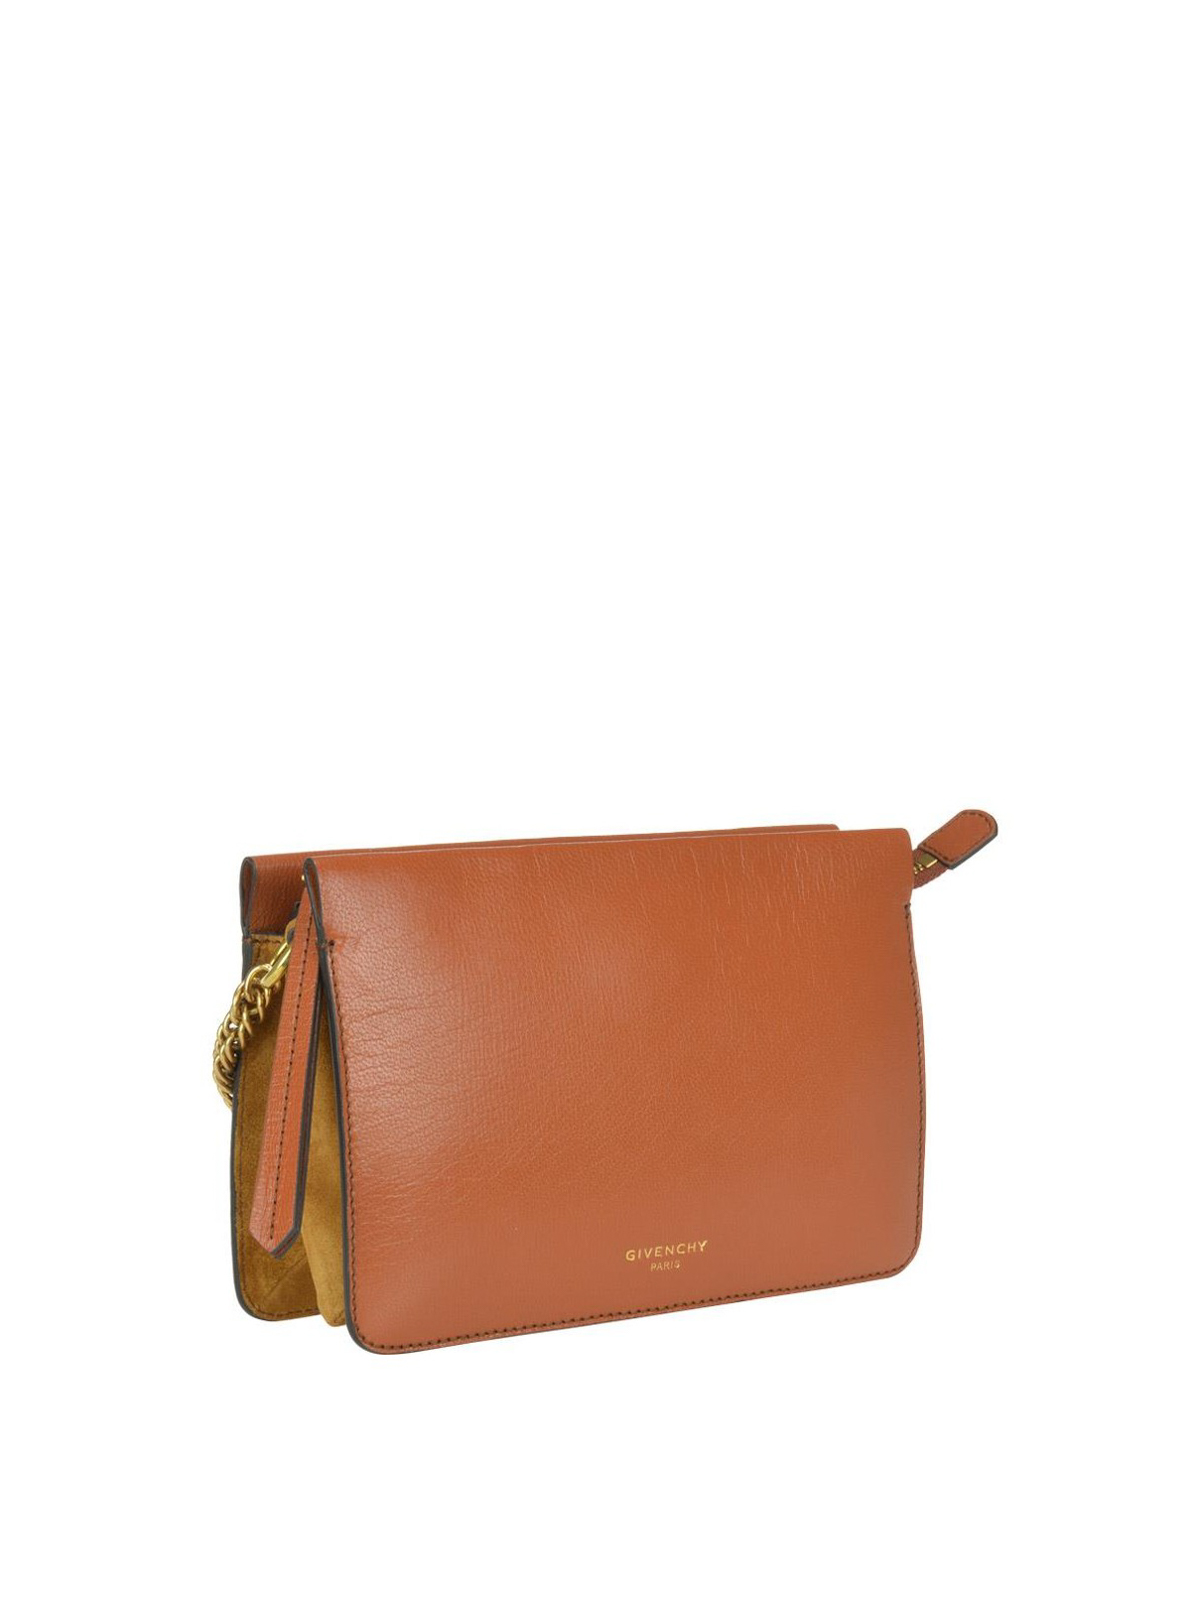 5b16847537a9 GIVENCHY  cross body bags online - Cross 3 brown leather zipped small bag